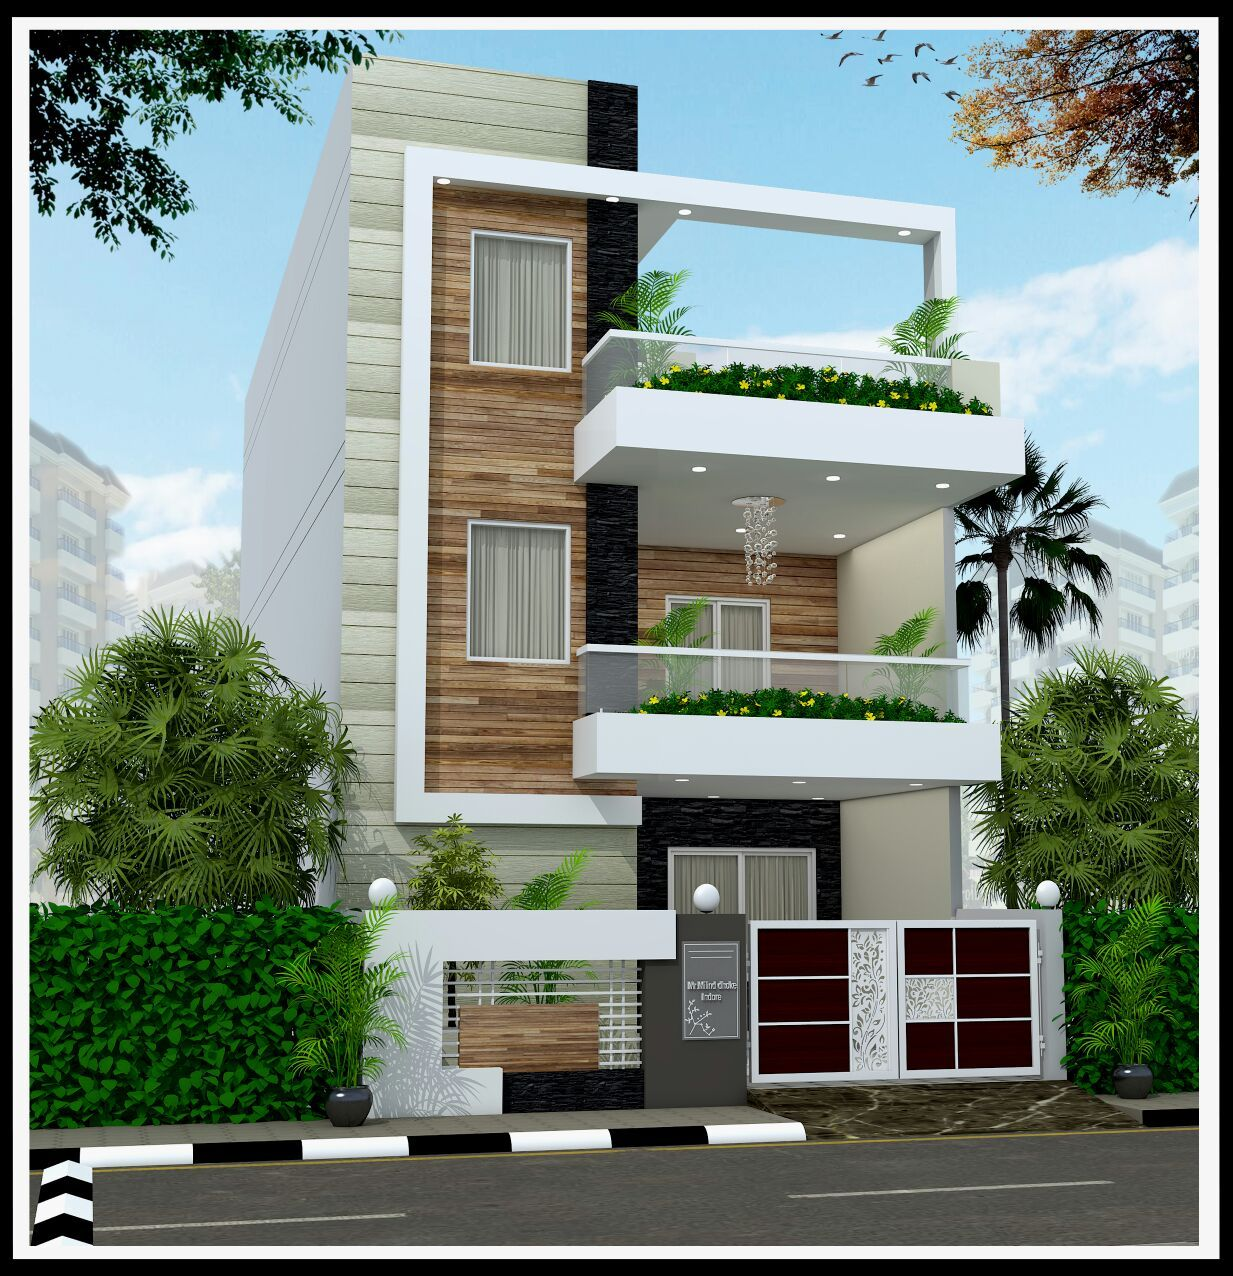 feet by modern house plan with bedrooms front elevation designs also nisarg rachna qavi in pinterest design and rh